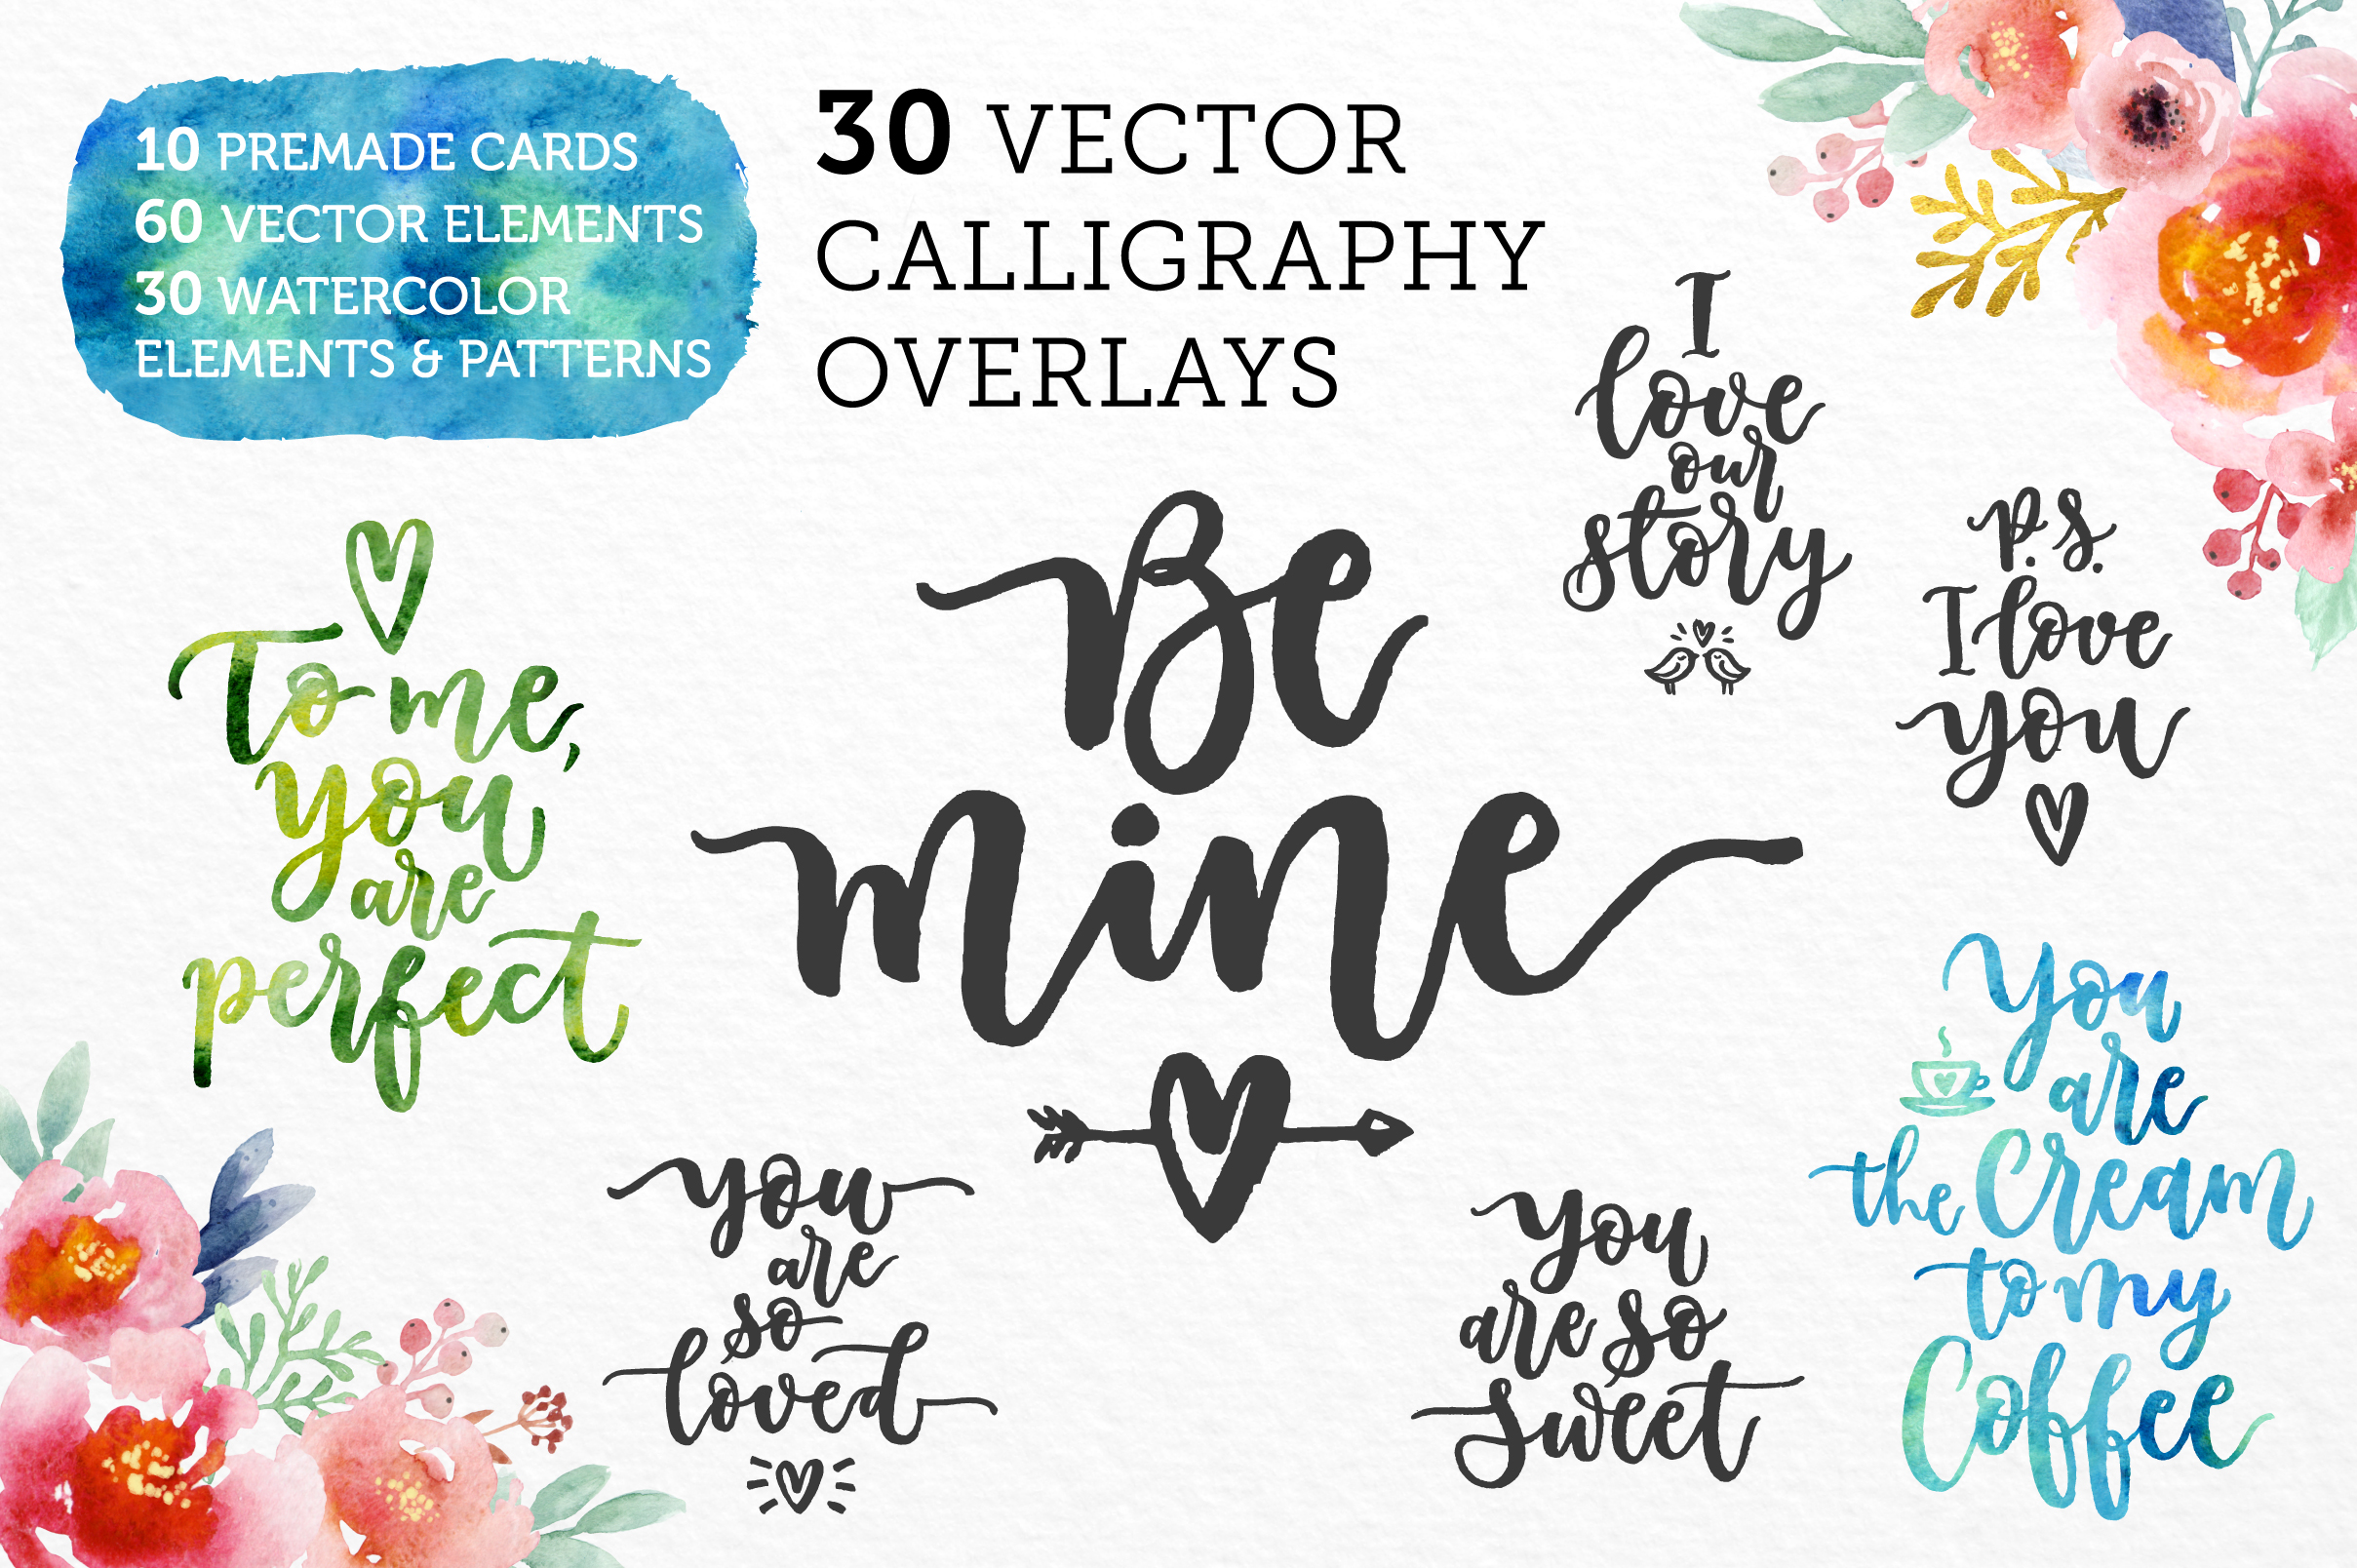 Romantic Overlays, Greetings example image 1